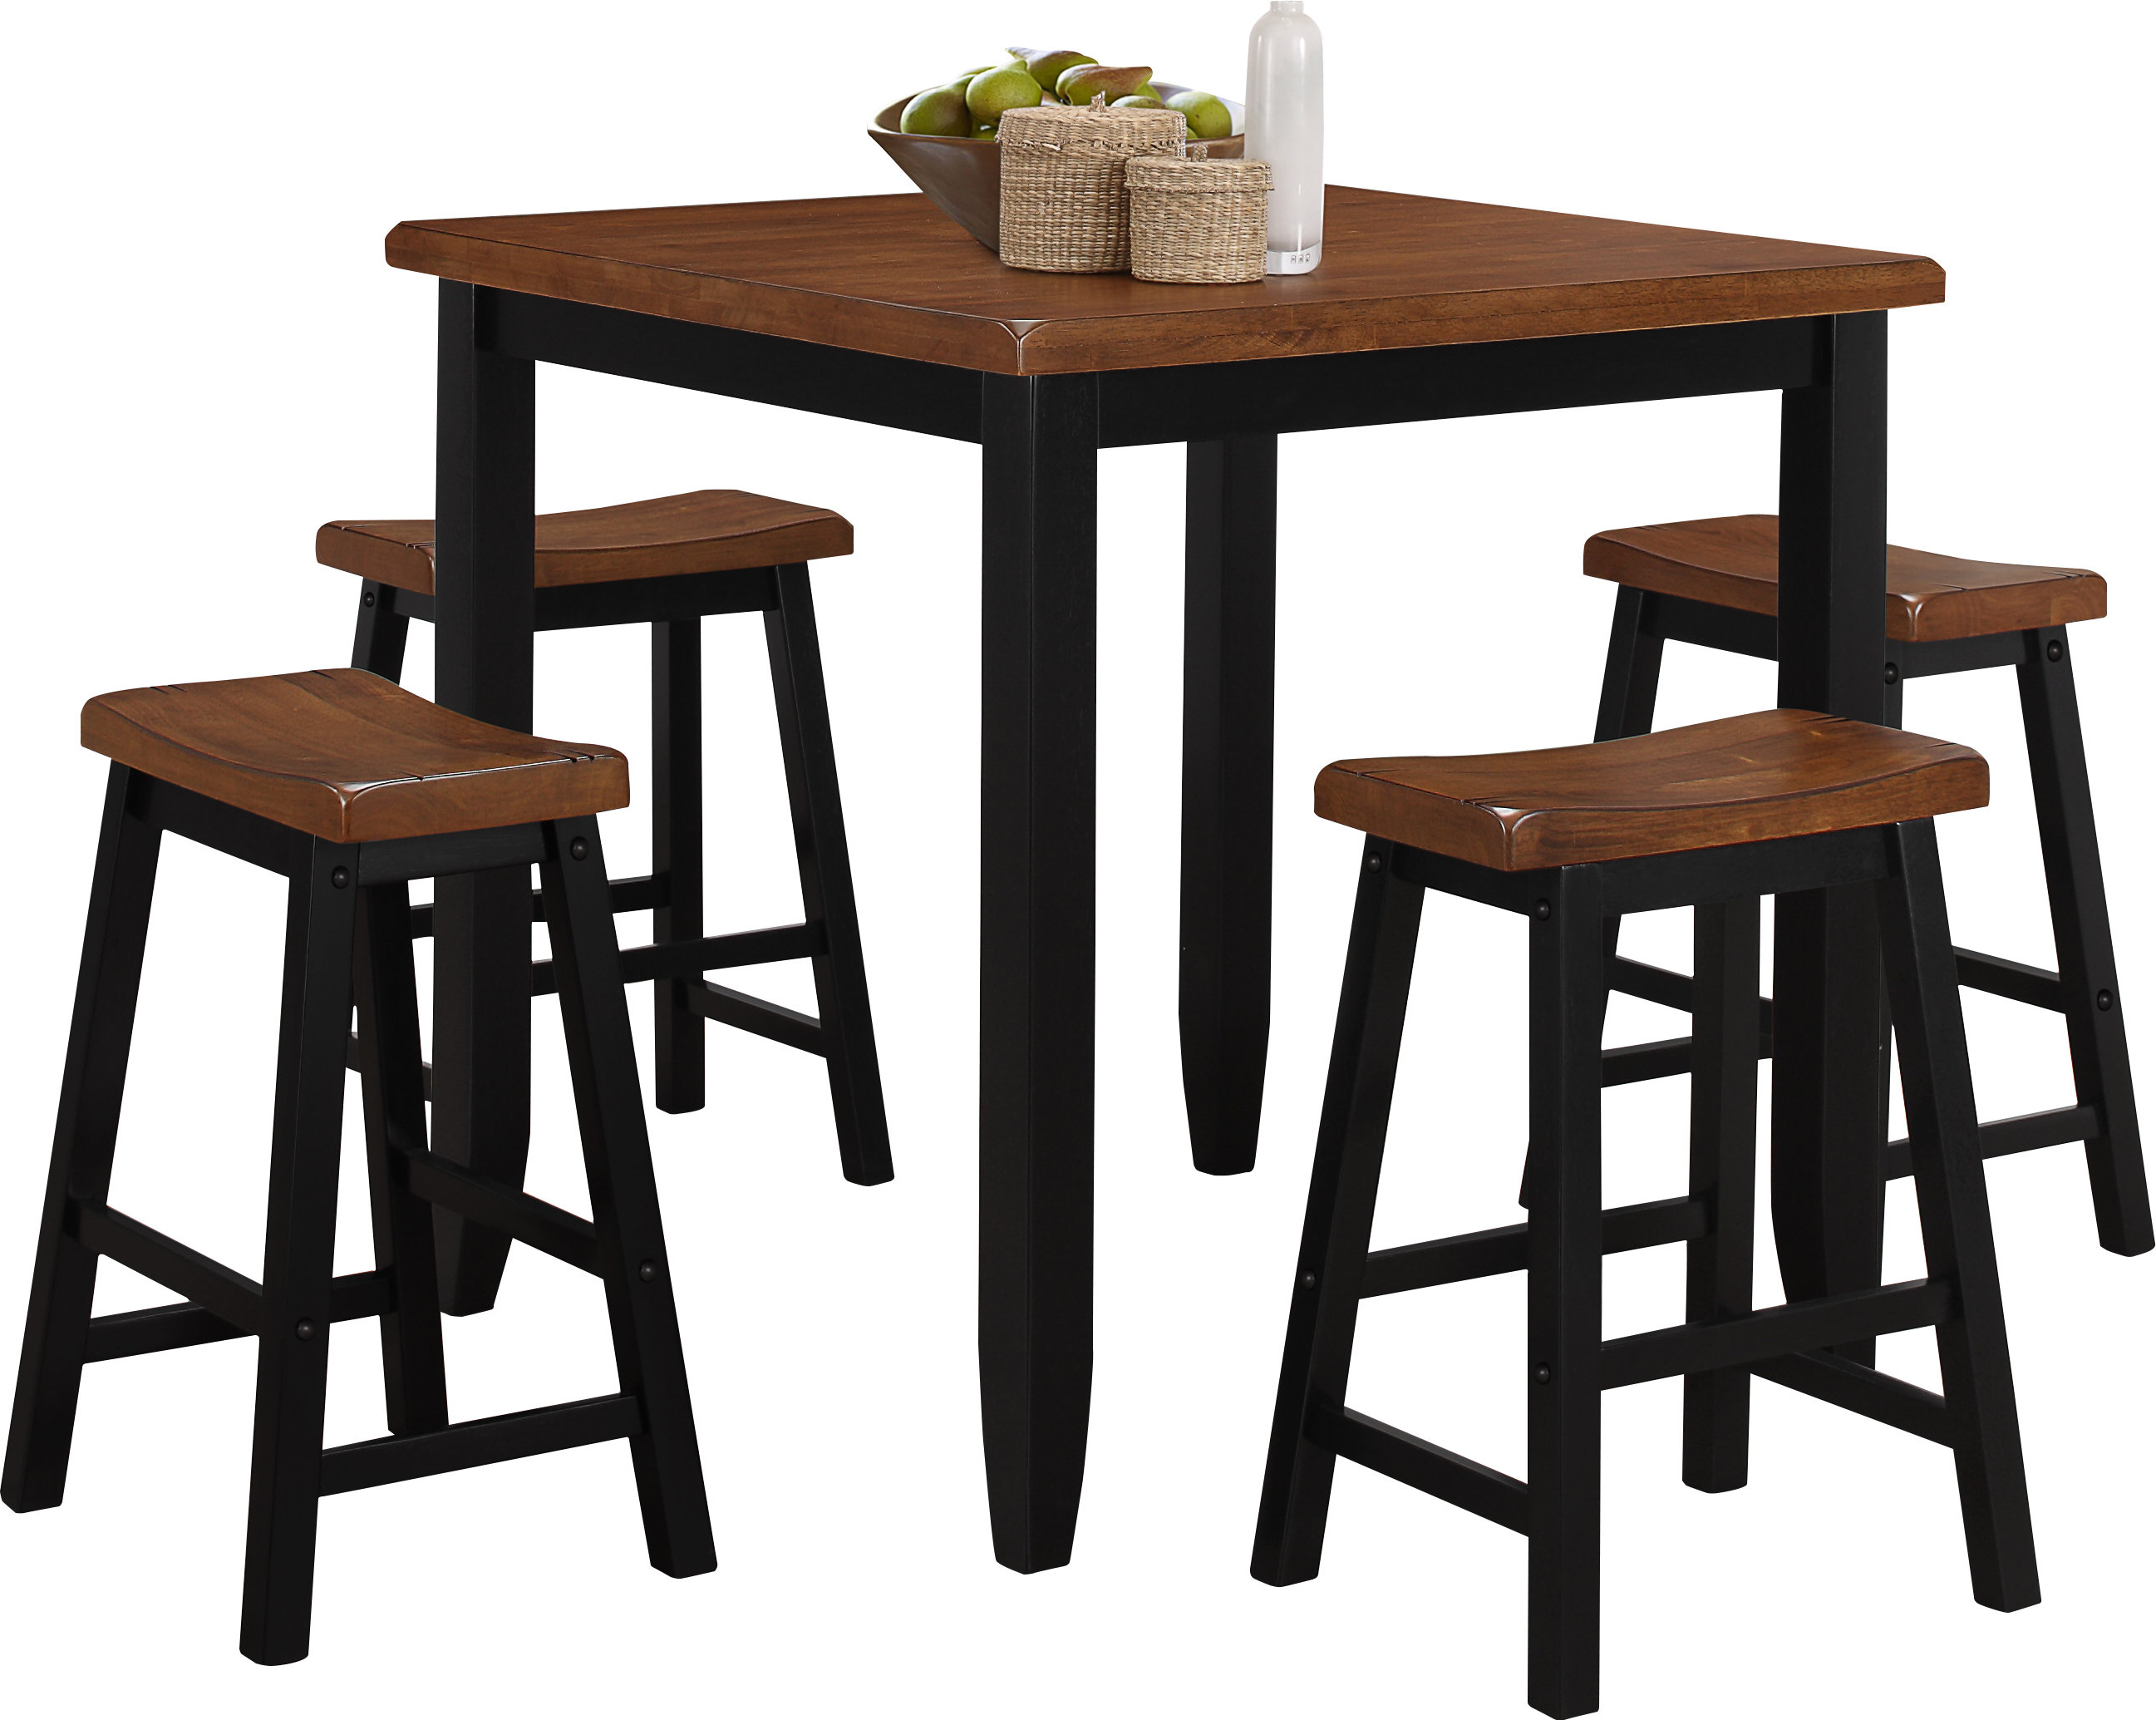 Simmons Casegoods Ruggerio 5 Piece Counter Height Pub Table Set Regarding Preferred Tenney 3 Piece Counter Height Dining Sets (View 11 of 25)